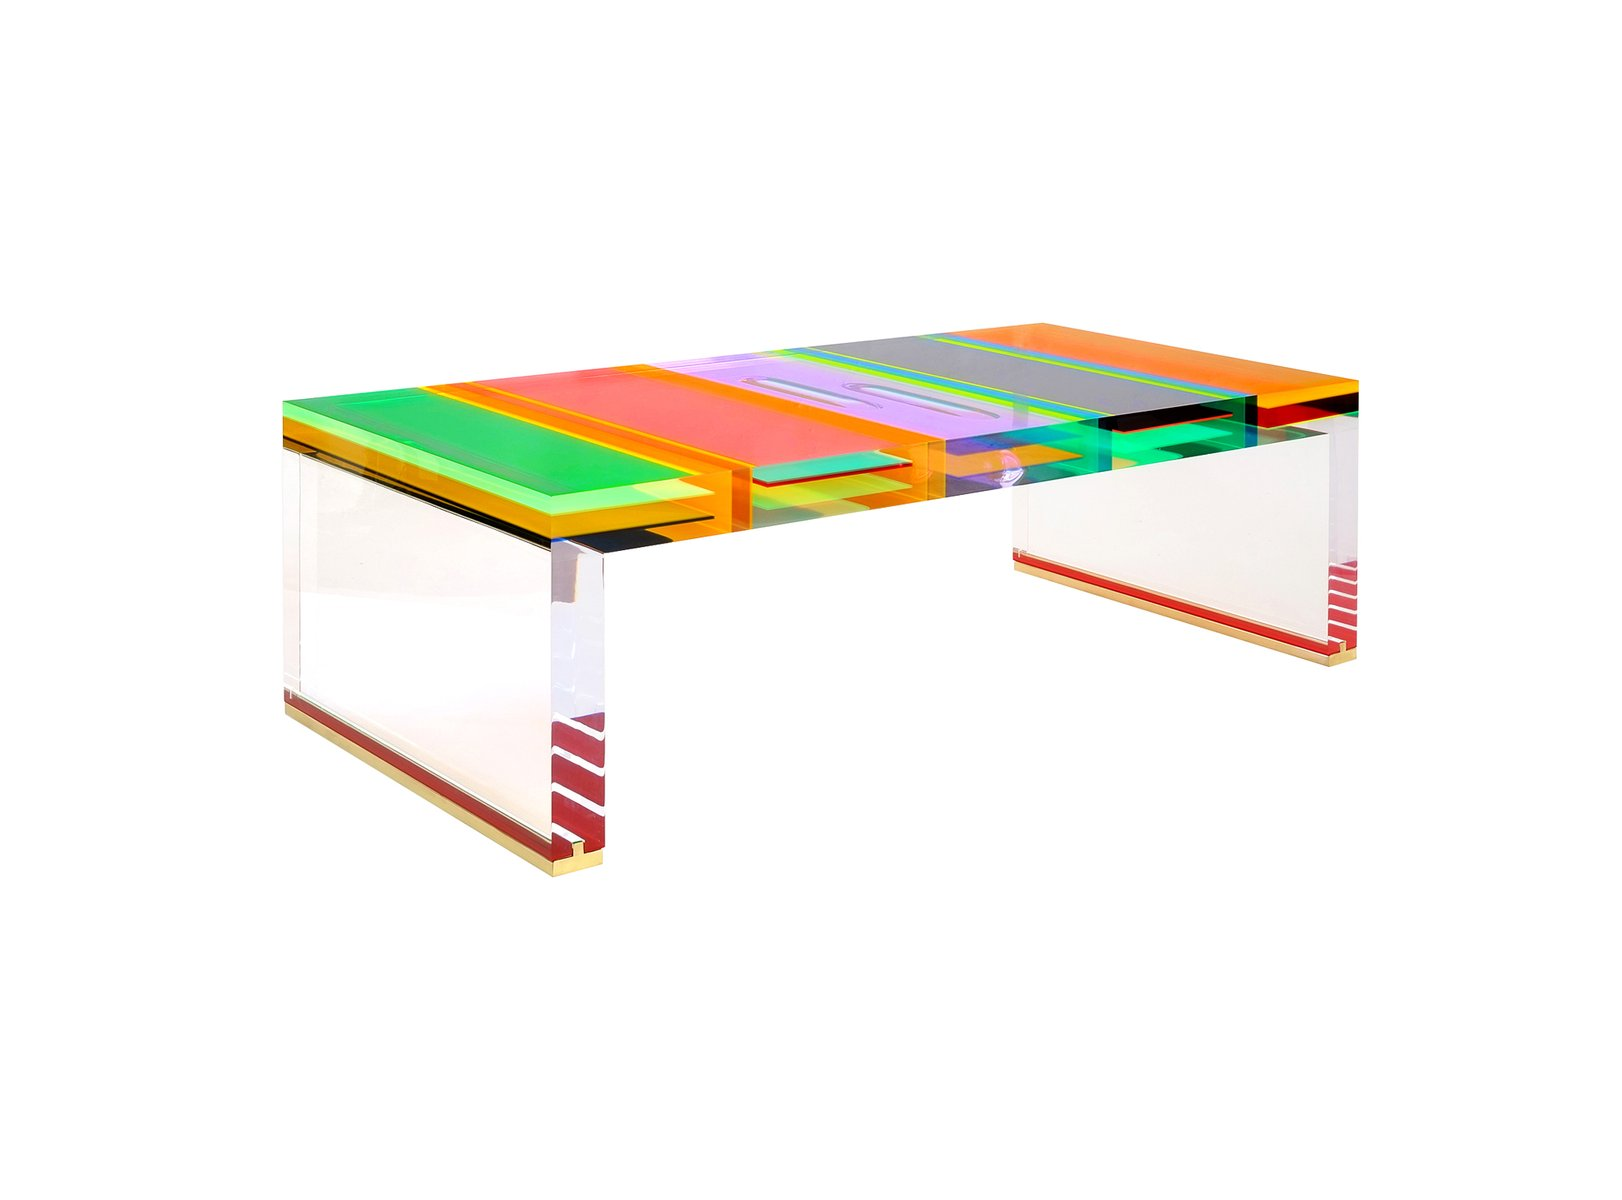 table basse dna en plexiglas par studio superego en vente sur pamono. Black Bedroom Furniture Sets. Home Design Ideas